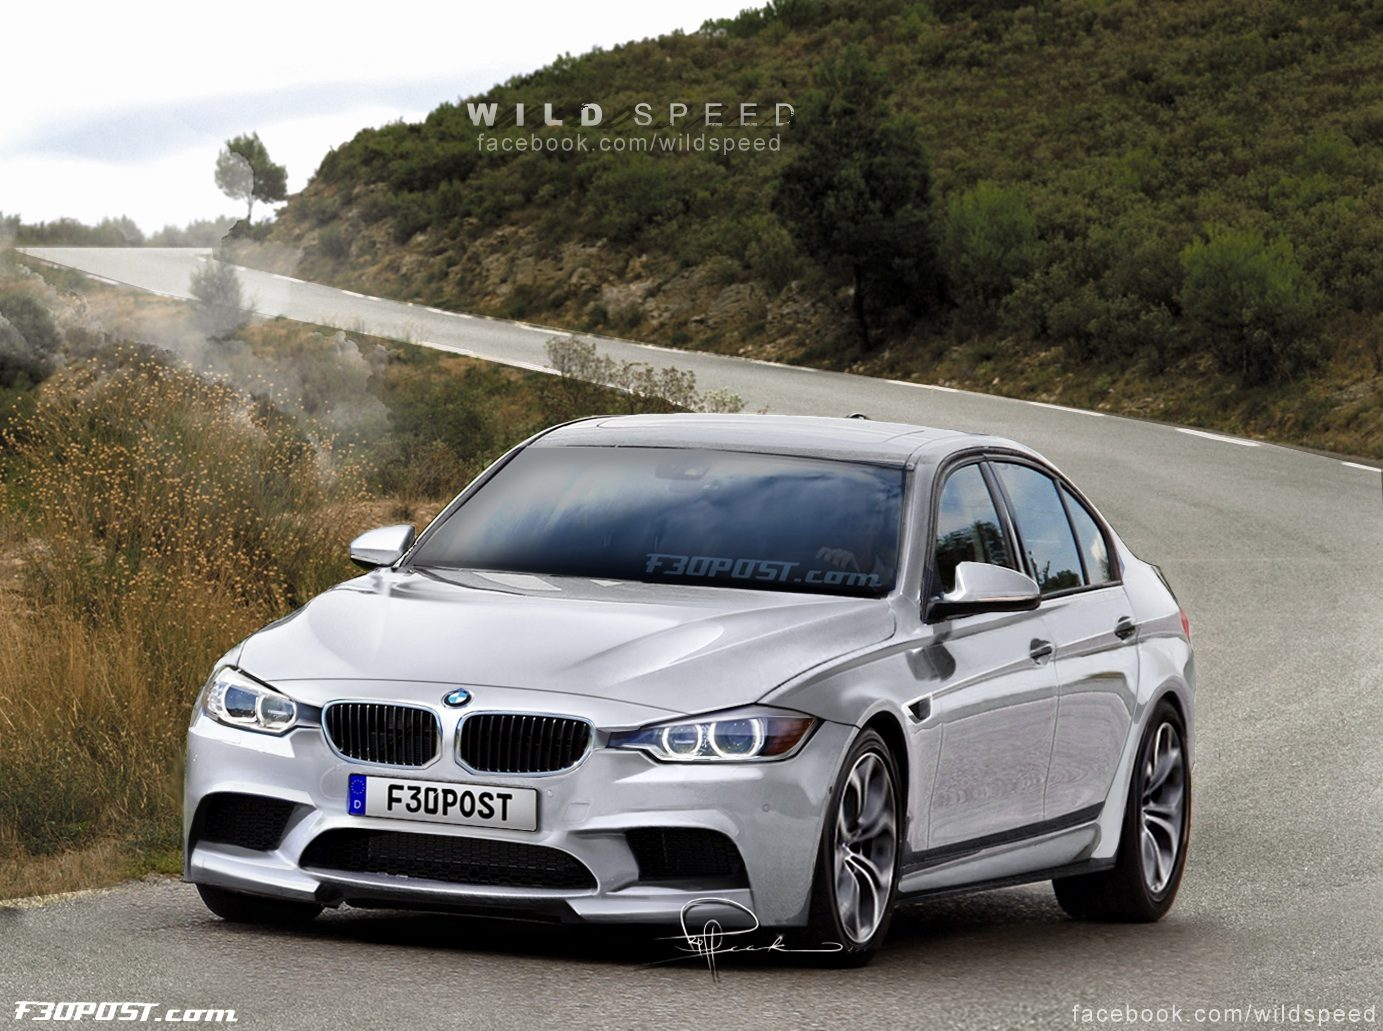 BMW_M3_F80_Wildspeed_01.jpg